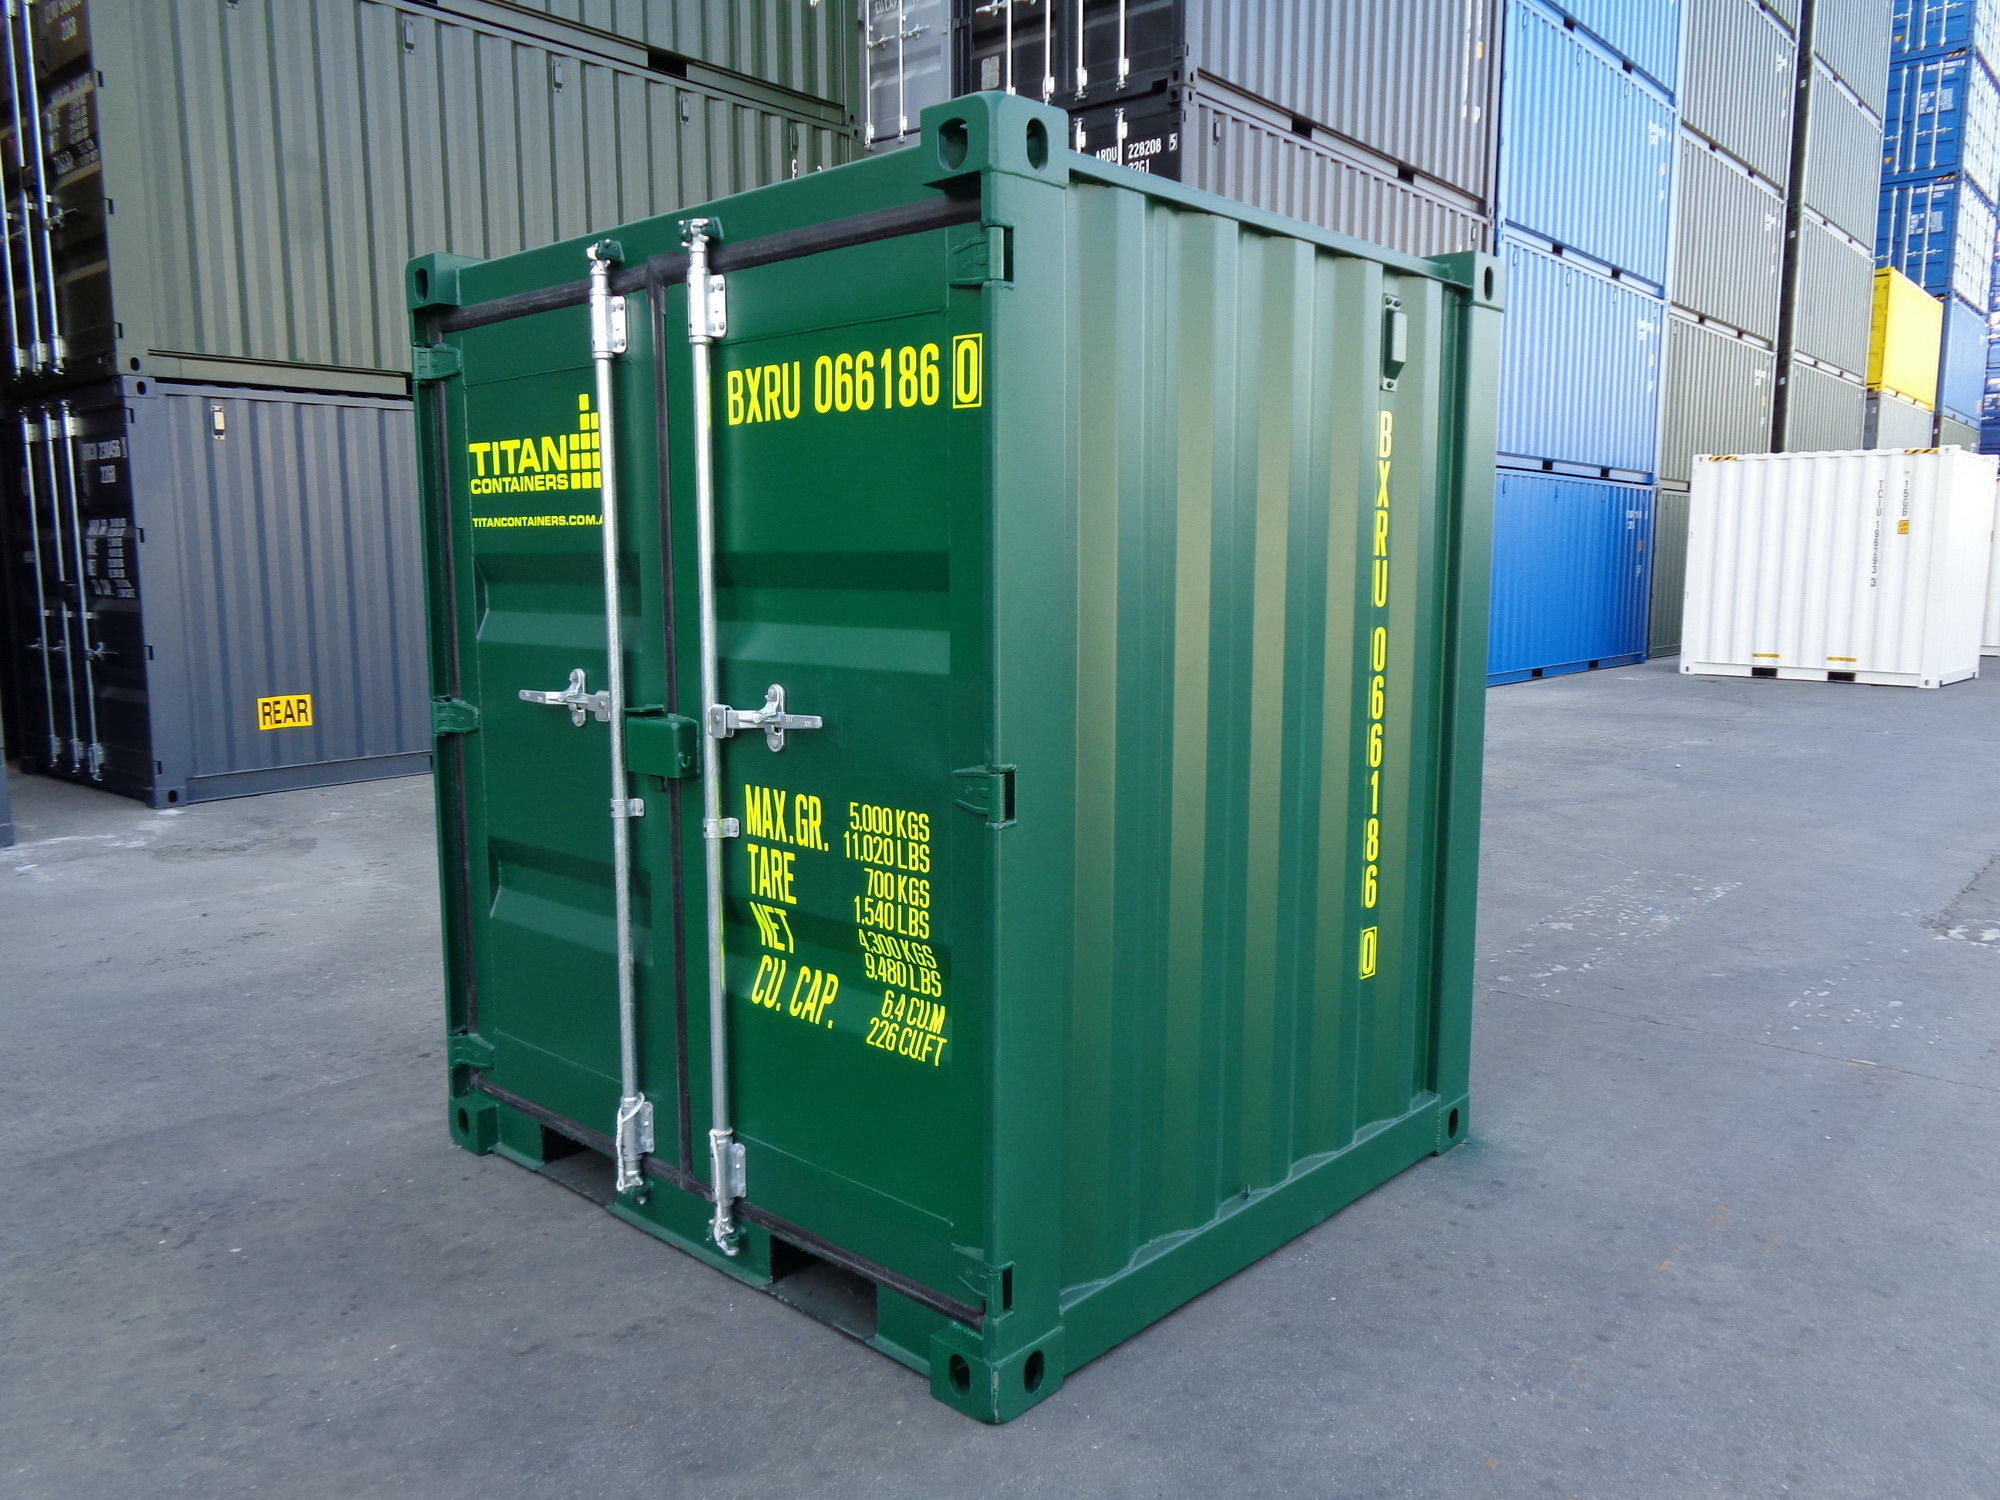 New green 6 container - extra high